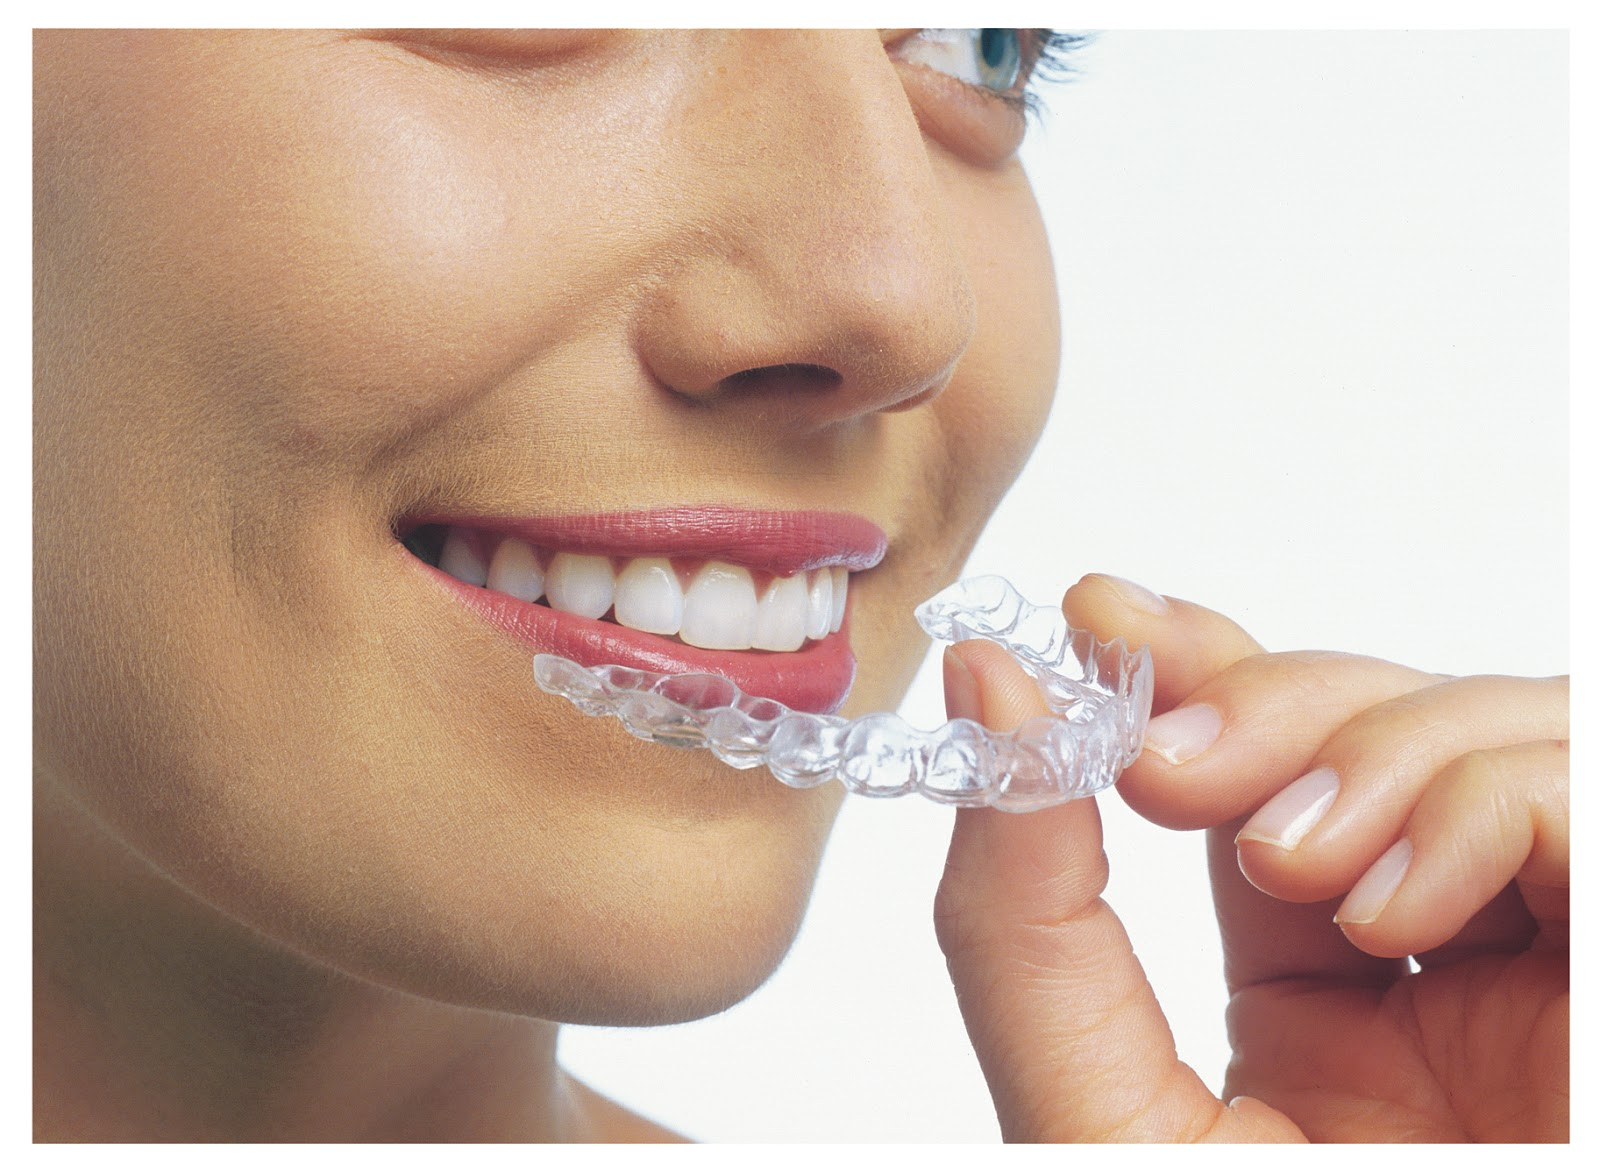 Rosen's Rants: Are You Too Old For Braces?